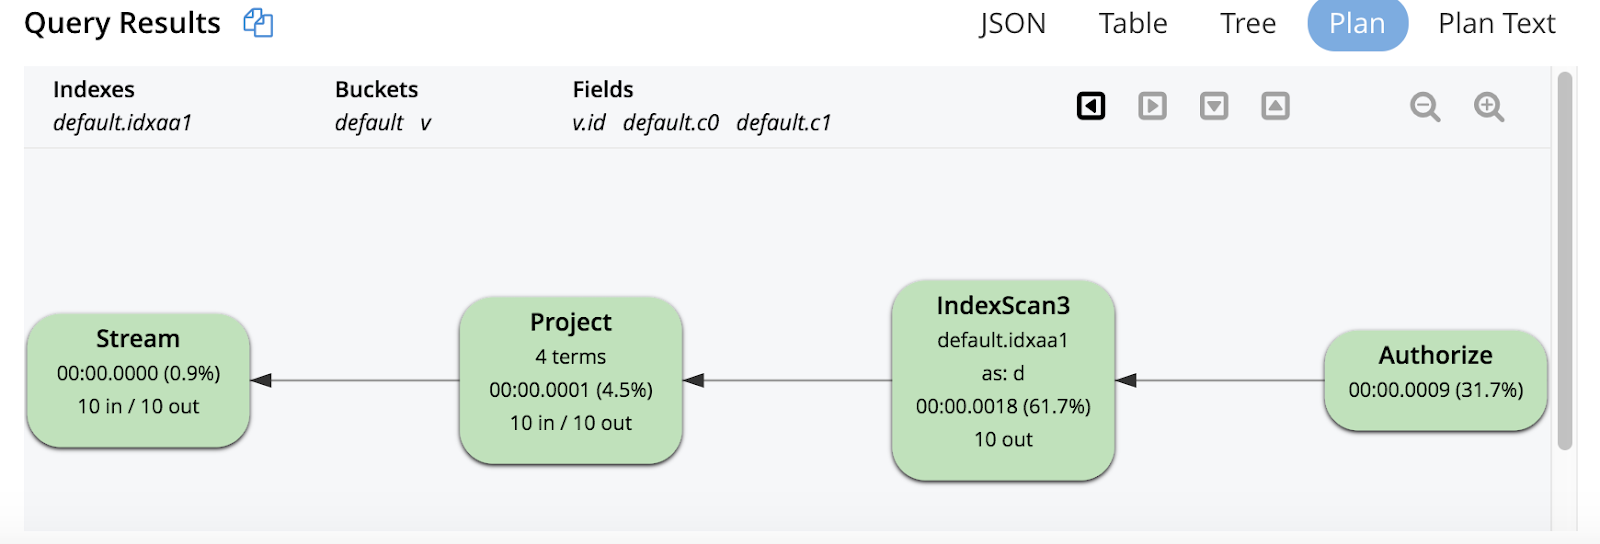 Json Savi Labs Component And Major Connector Location Diagram 124kb The Predicate Vid 0 Can Be Converted Into Exact Range Scans Passed To Index Scan Therefore Query Combination Is Suitable